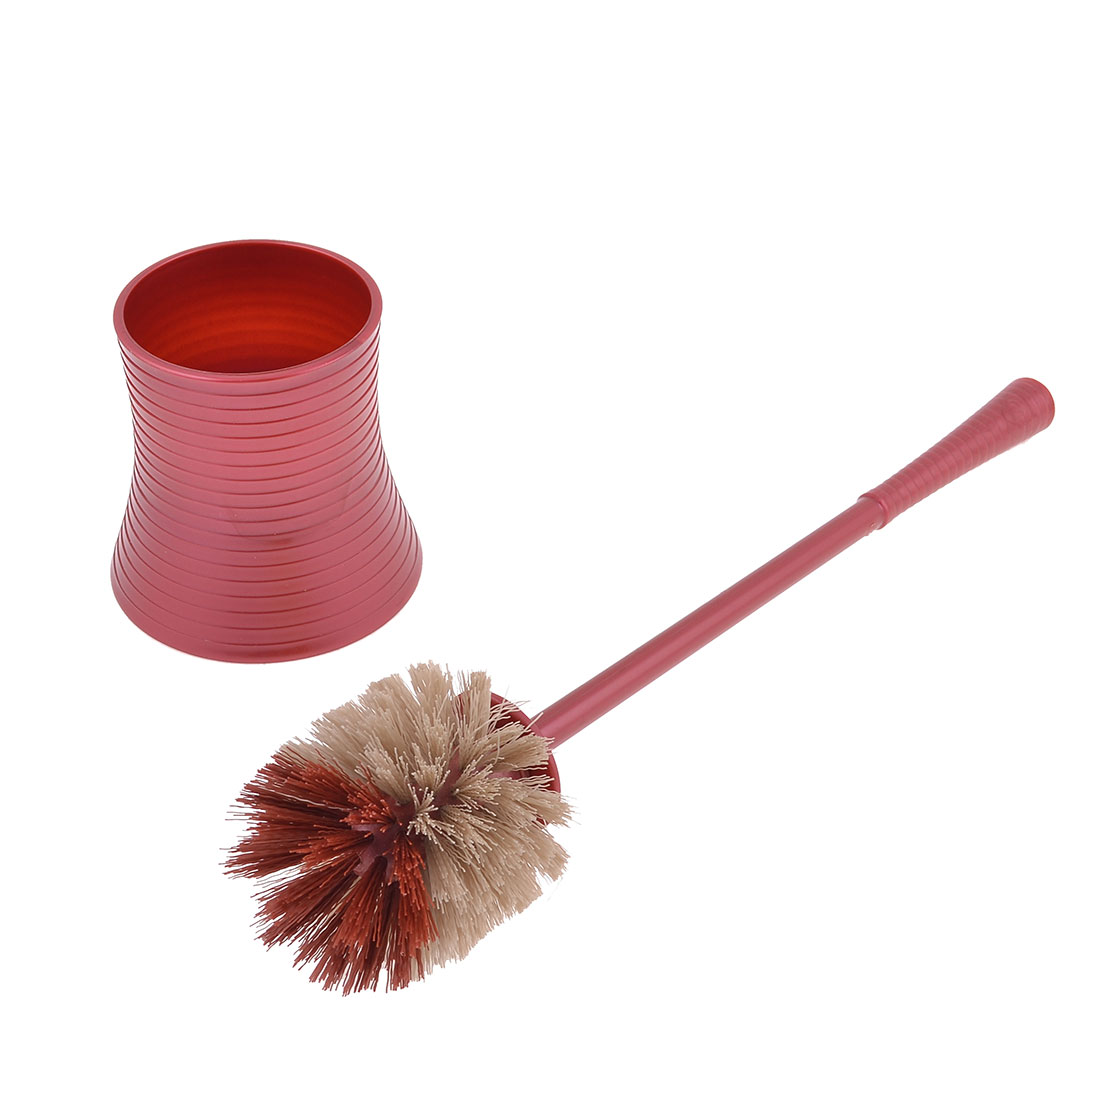 Burgundy Plastic 30cm Handle Round Bristle Head Pot Toilet Cleaning Scrubbing Brush